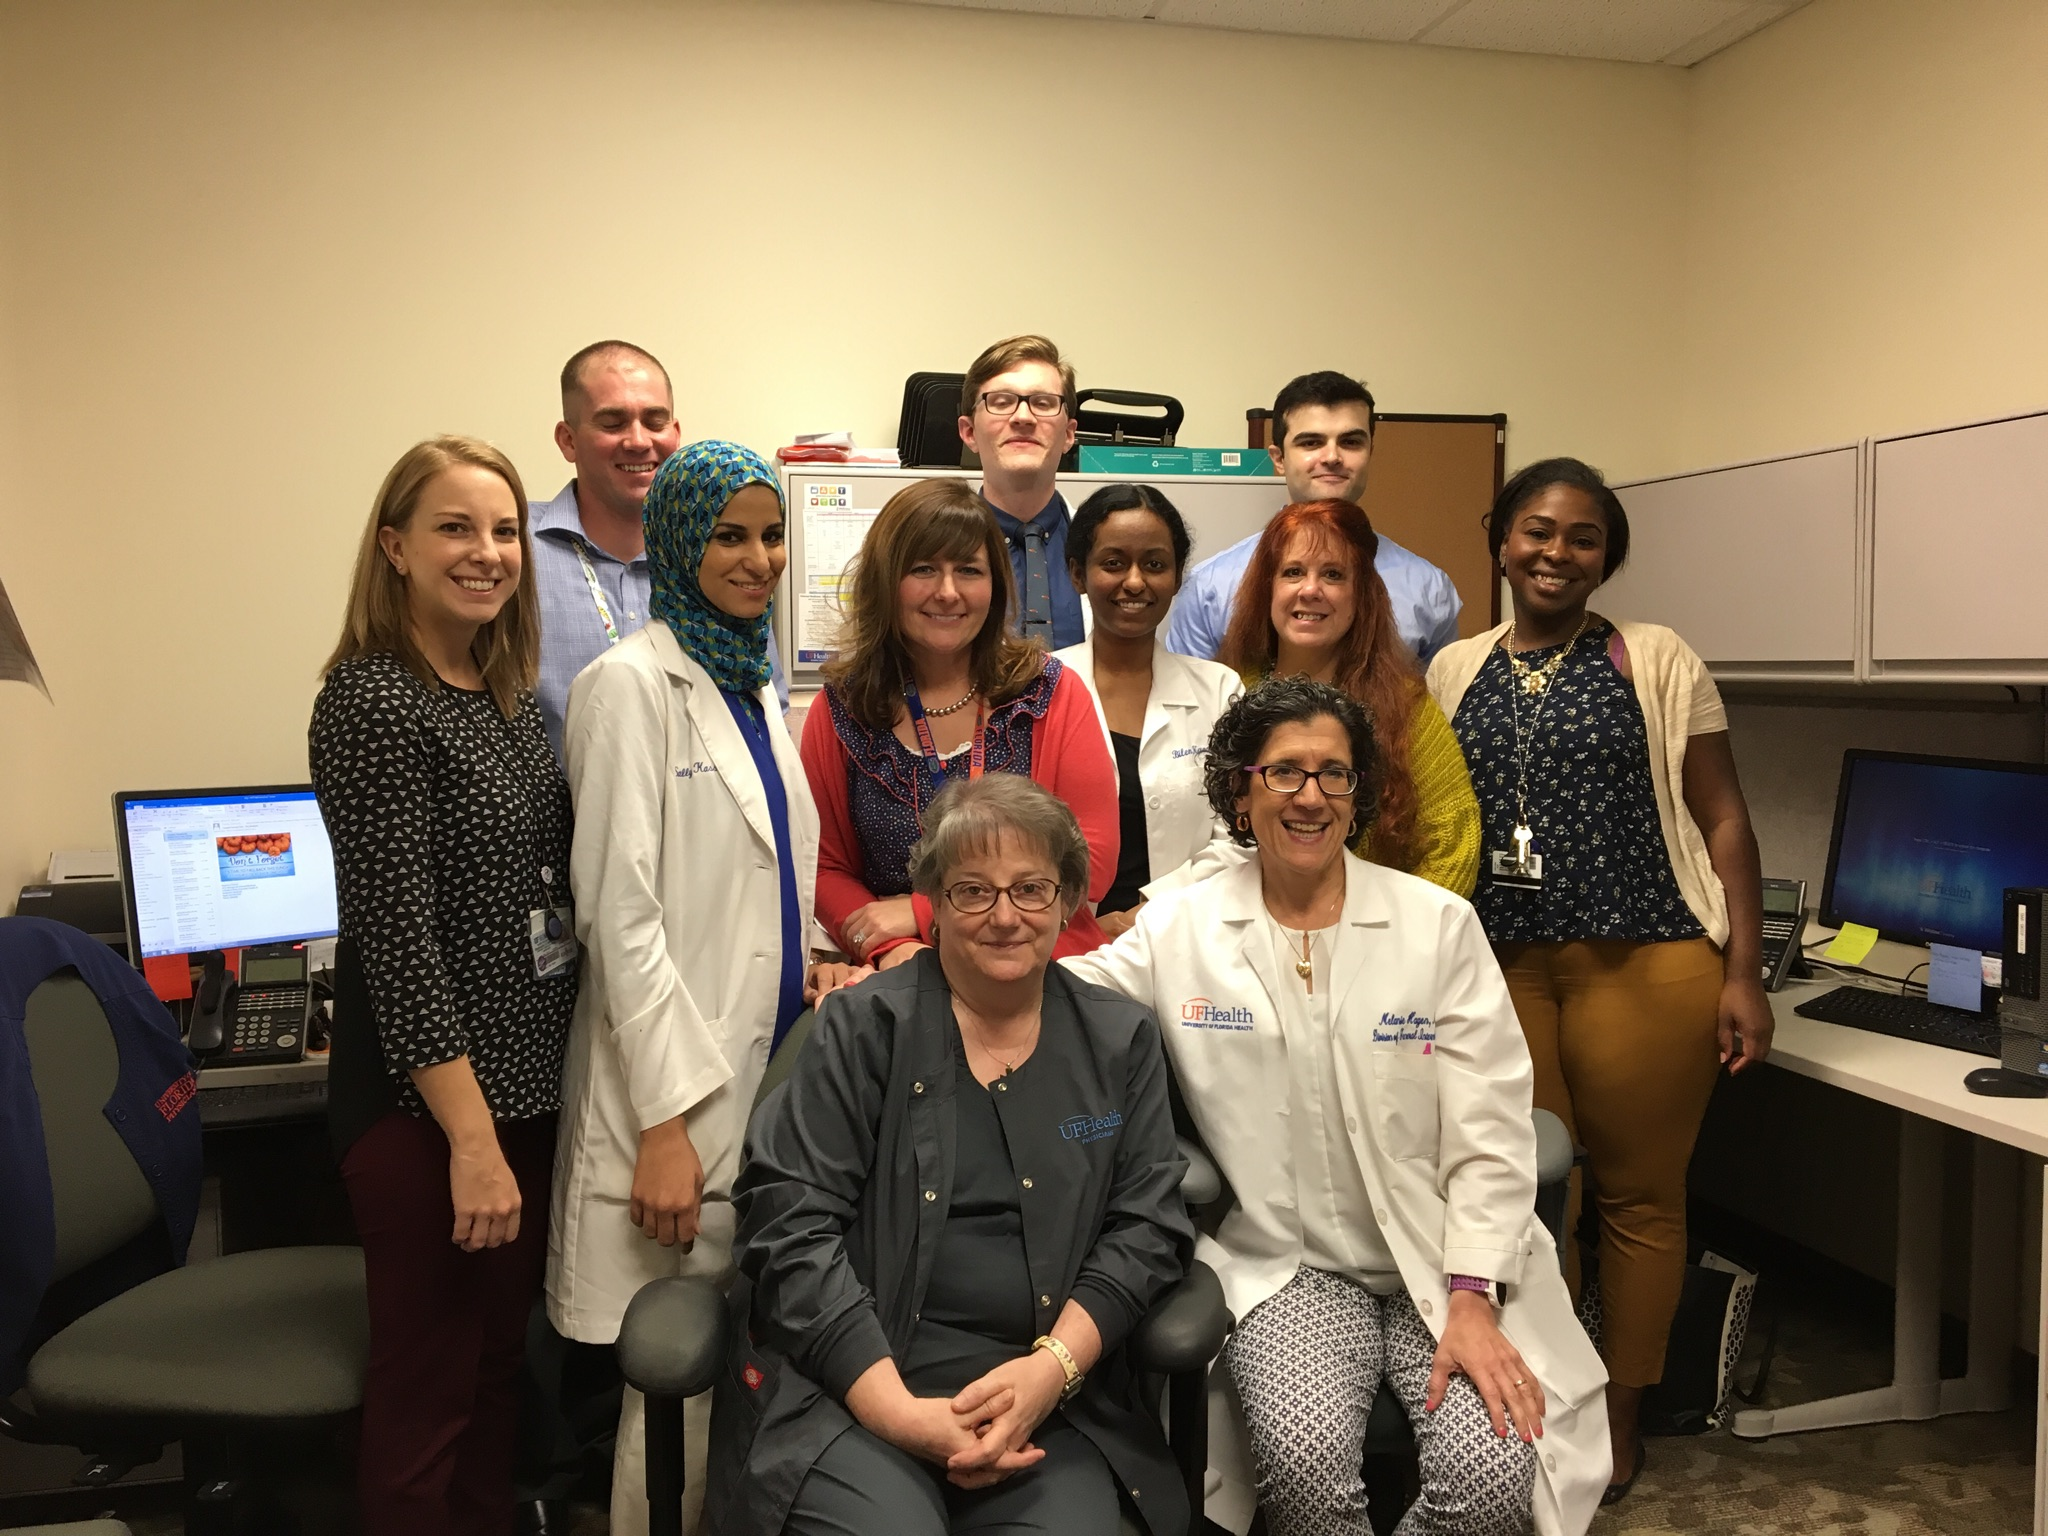 Recently participating on the Transitions of Care team are, from left to right, front row: Maryann Grottano, RN, BSN, health coach, & Melanie Hagen, MD, FACP. Second row: Stephanie G. Smith, Ph.D.; Sally Kassem, pharmacy student; Katherine Vogel Anderson, PharmD., BCACP; Belin Kassu, medical student; Lee Collopy, LCSW; & Tiffany Phillips, MSW, RCSWI; social worker. Back row: Andrew Courtney, Homecare business development representative; Sean Moore, PA student; & Daniel Cordiner, MD, PGY-1 resident. Not pictured: Ryan Nall, MD